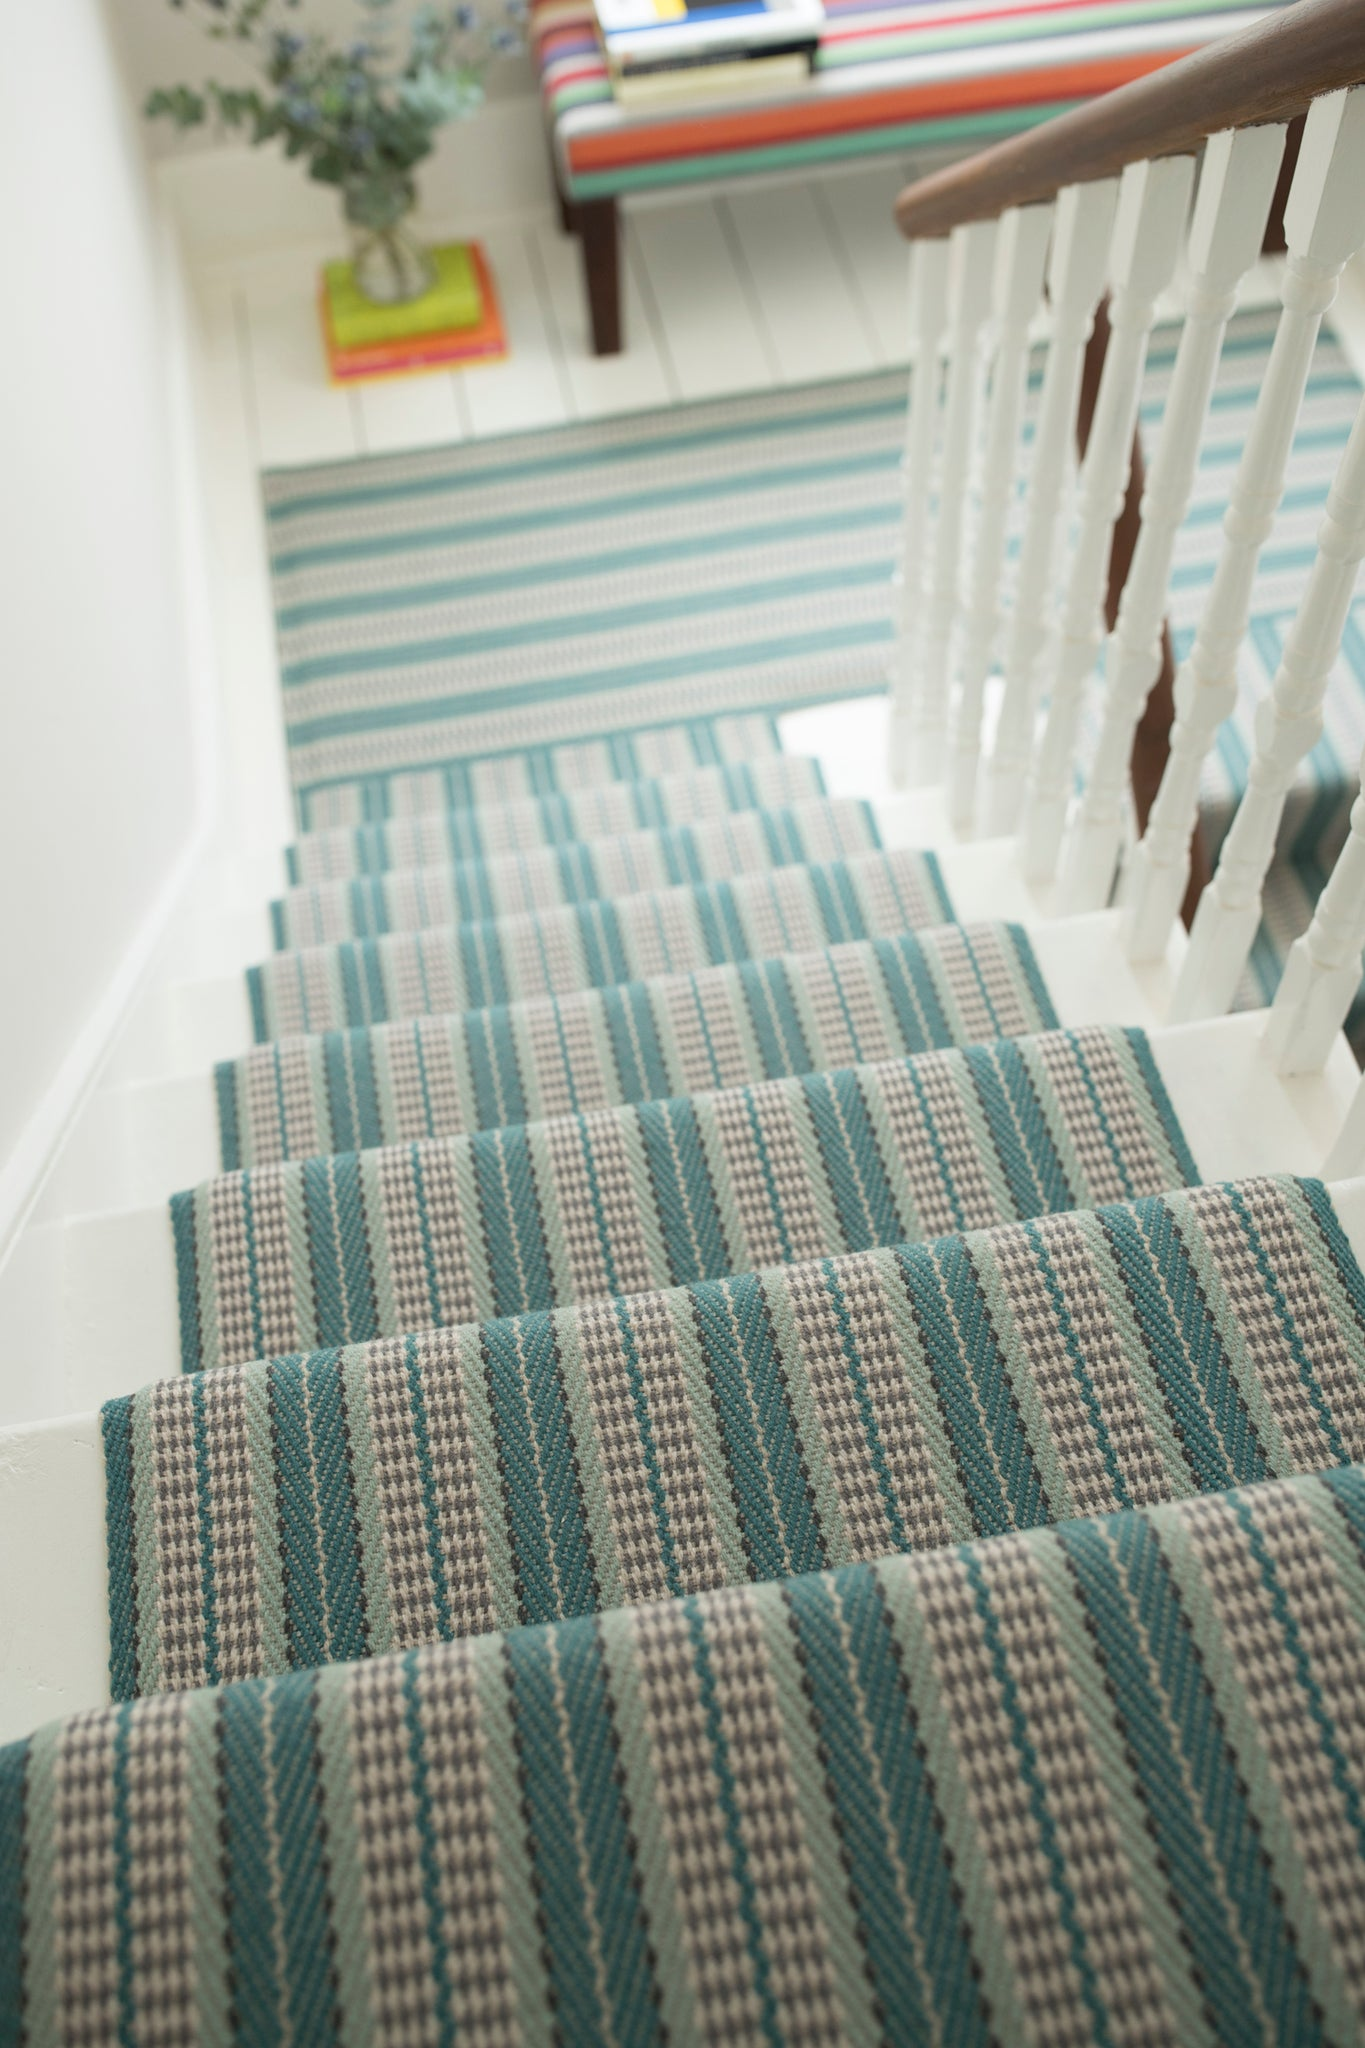 Roger Oates Stair Runner Vernon in Teal at Mister Smith Interiors